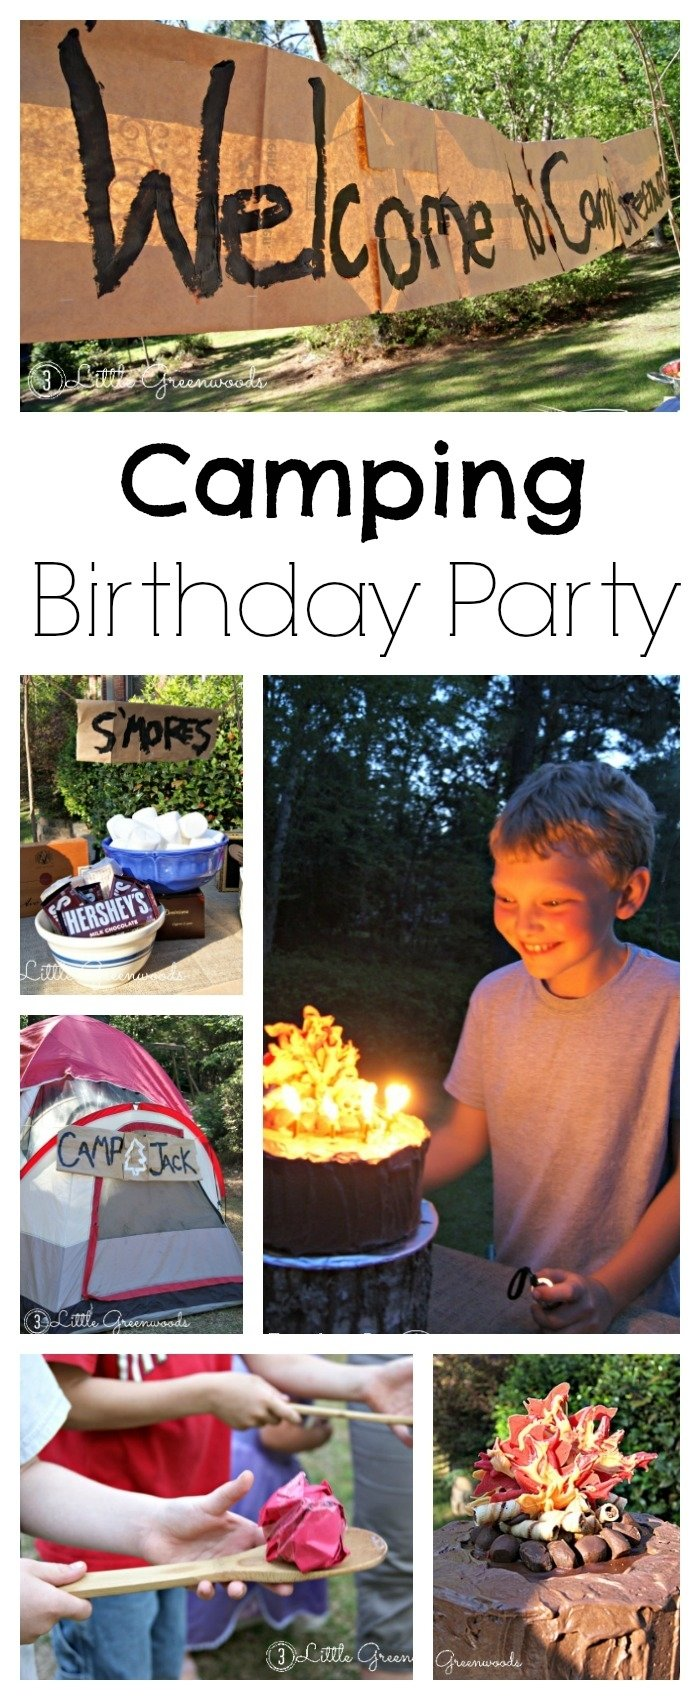 10 Gorgeous Fun Camping Ideas For Adults birthday party fun 2020